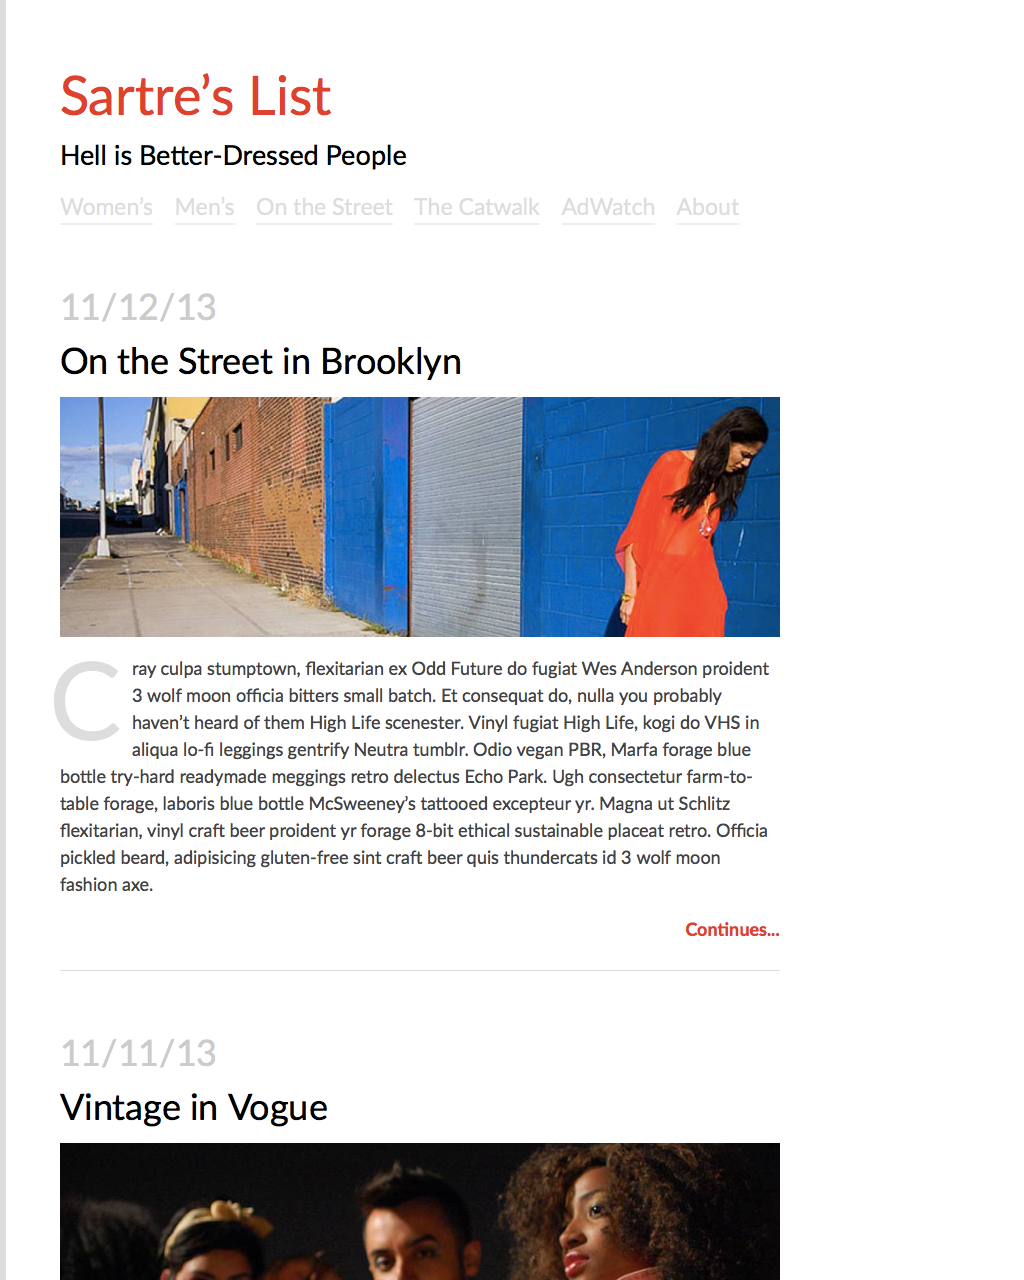 Single-column Fashion Blog Screenshot